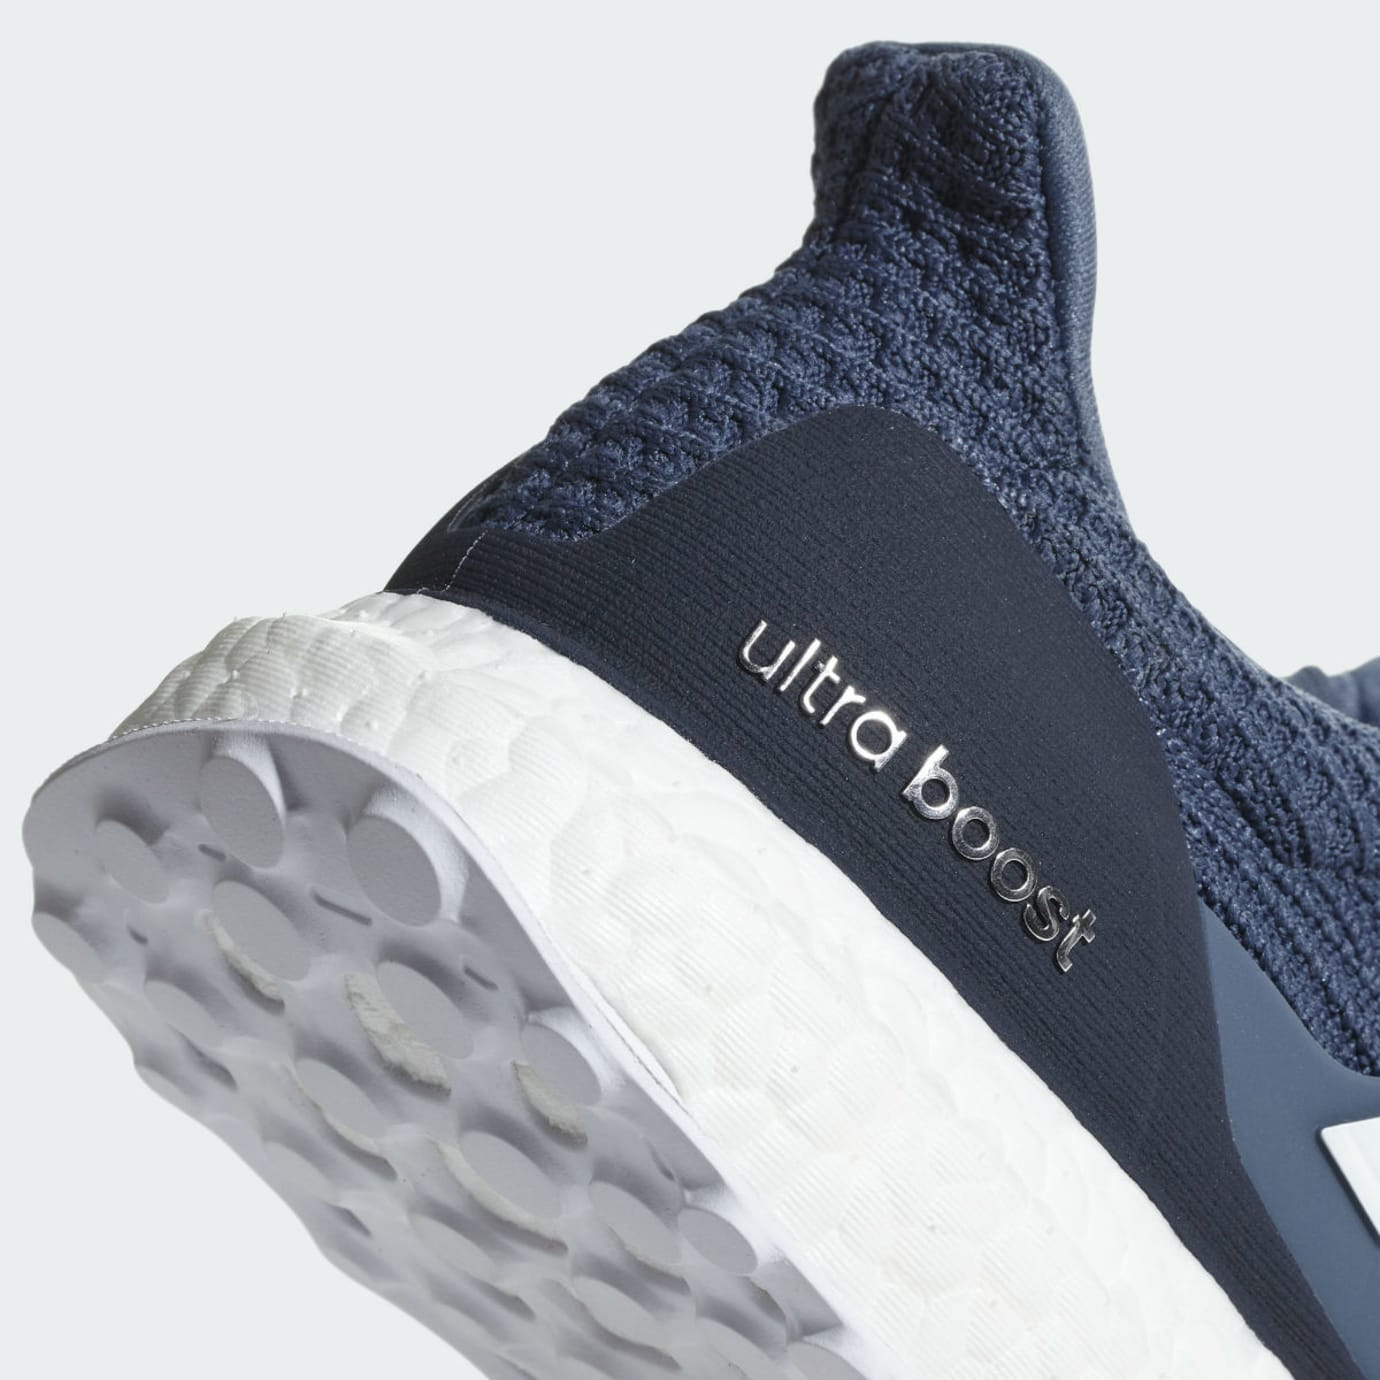 00a1845c3dc4d Image via Adidas Adidas Ultra Boost 4.0 Show Your Stripes Tech Ink Release  Date CM8113 Heel